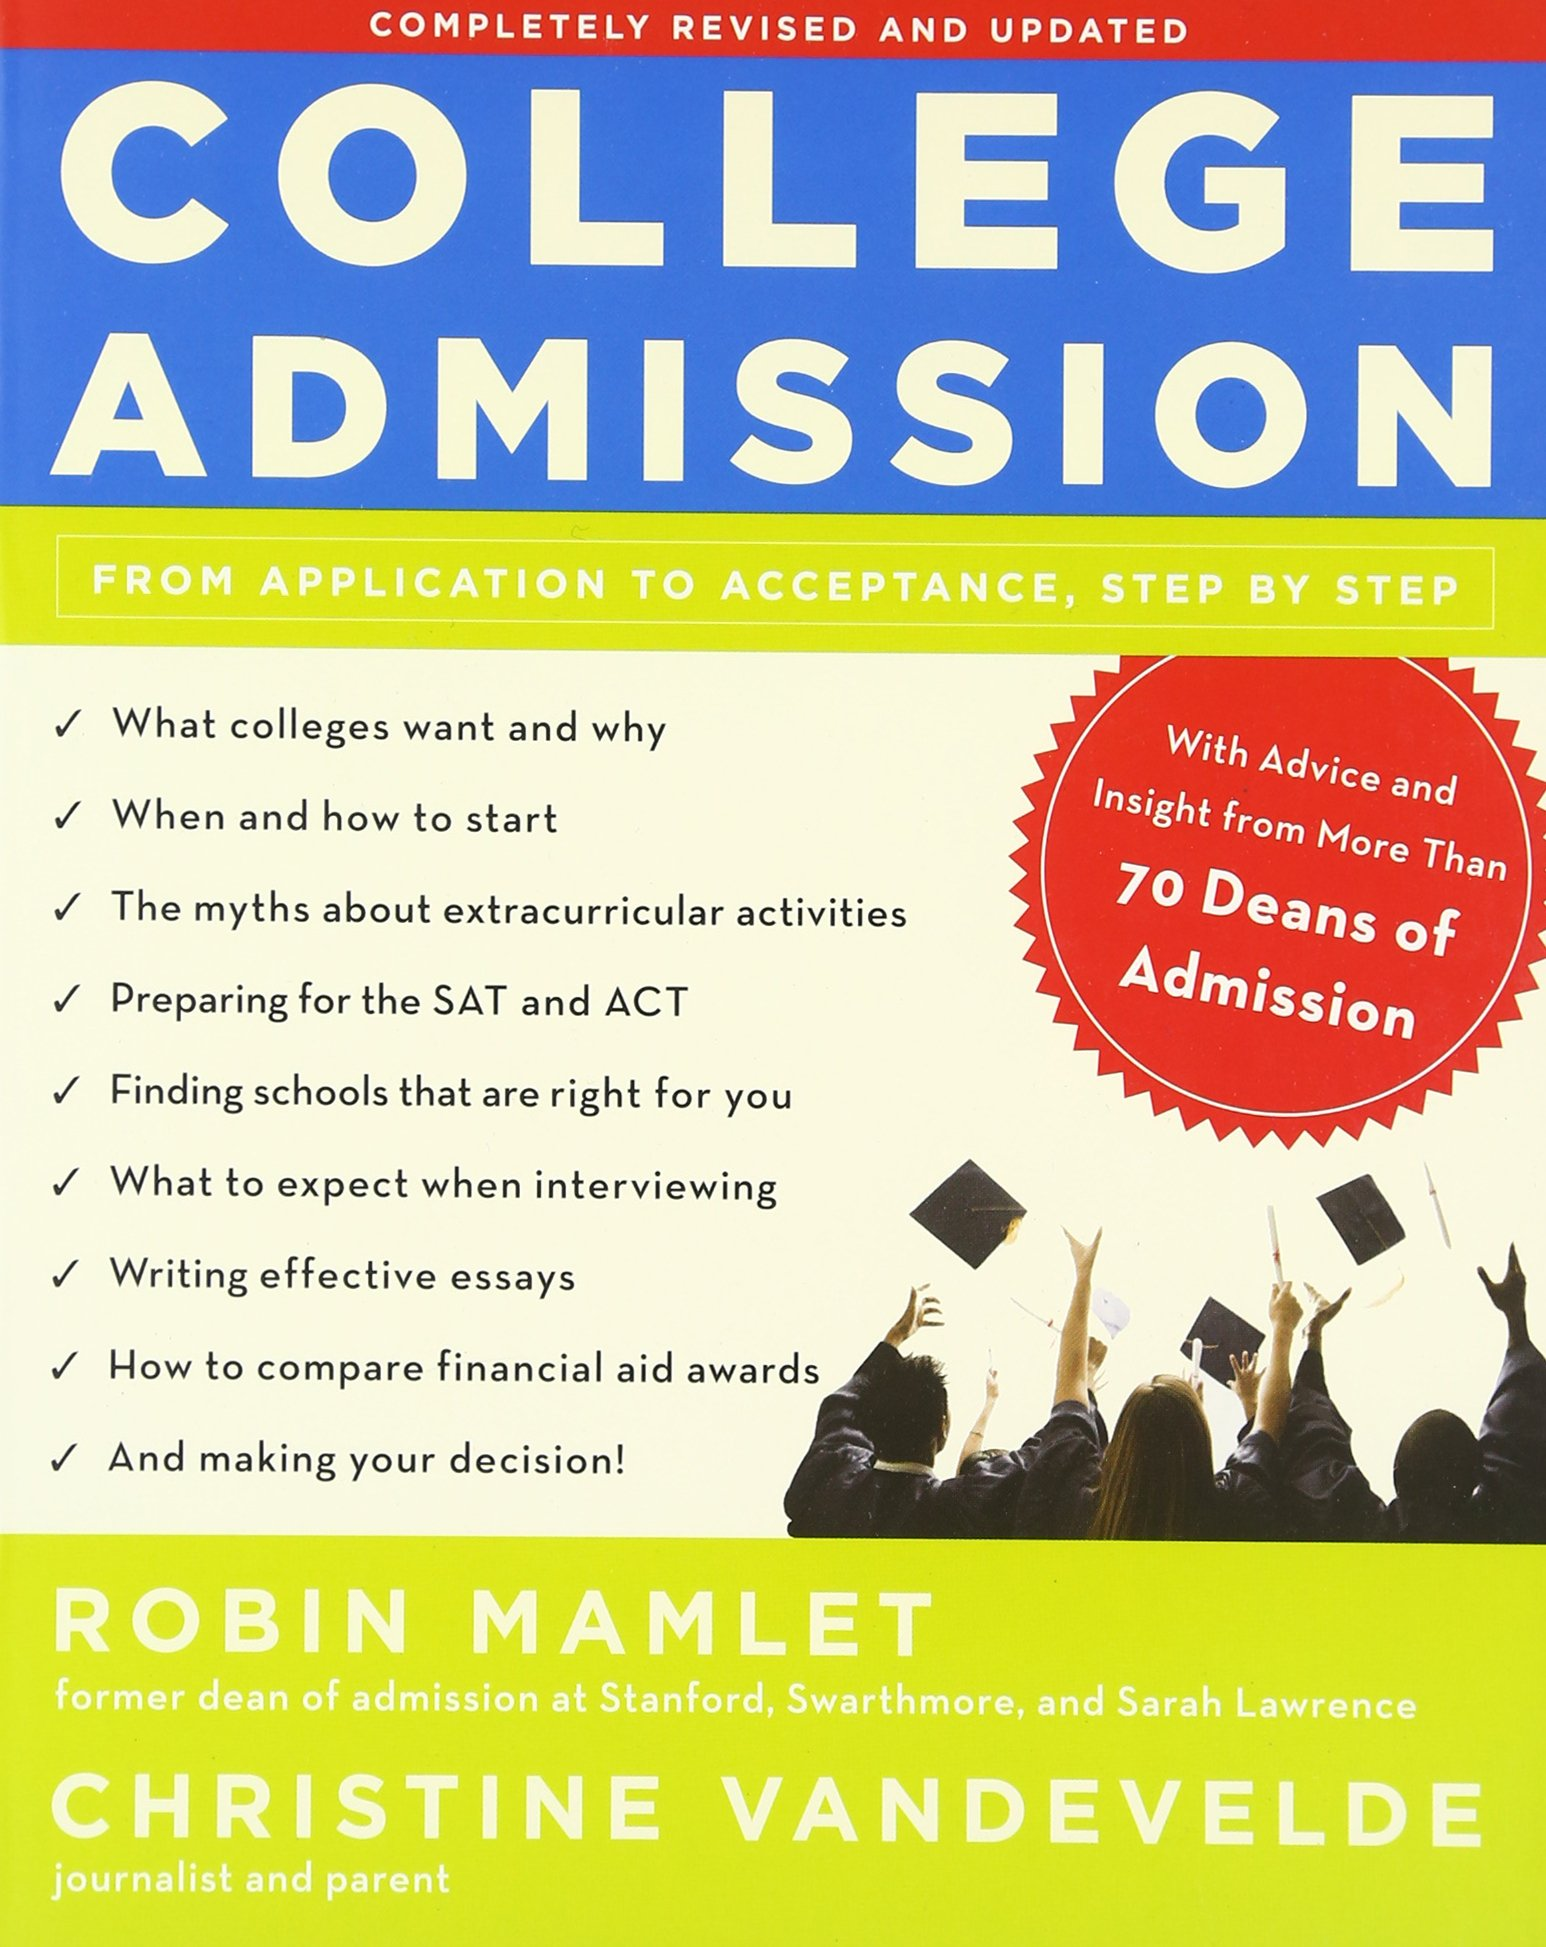 College Admission Application Acceptance Step